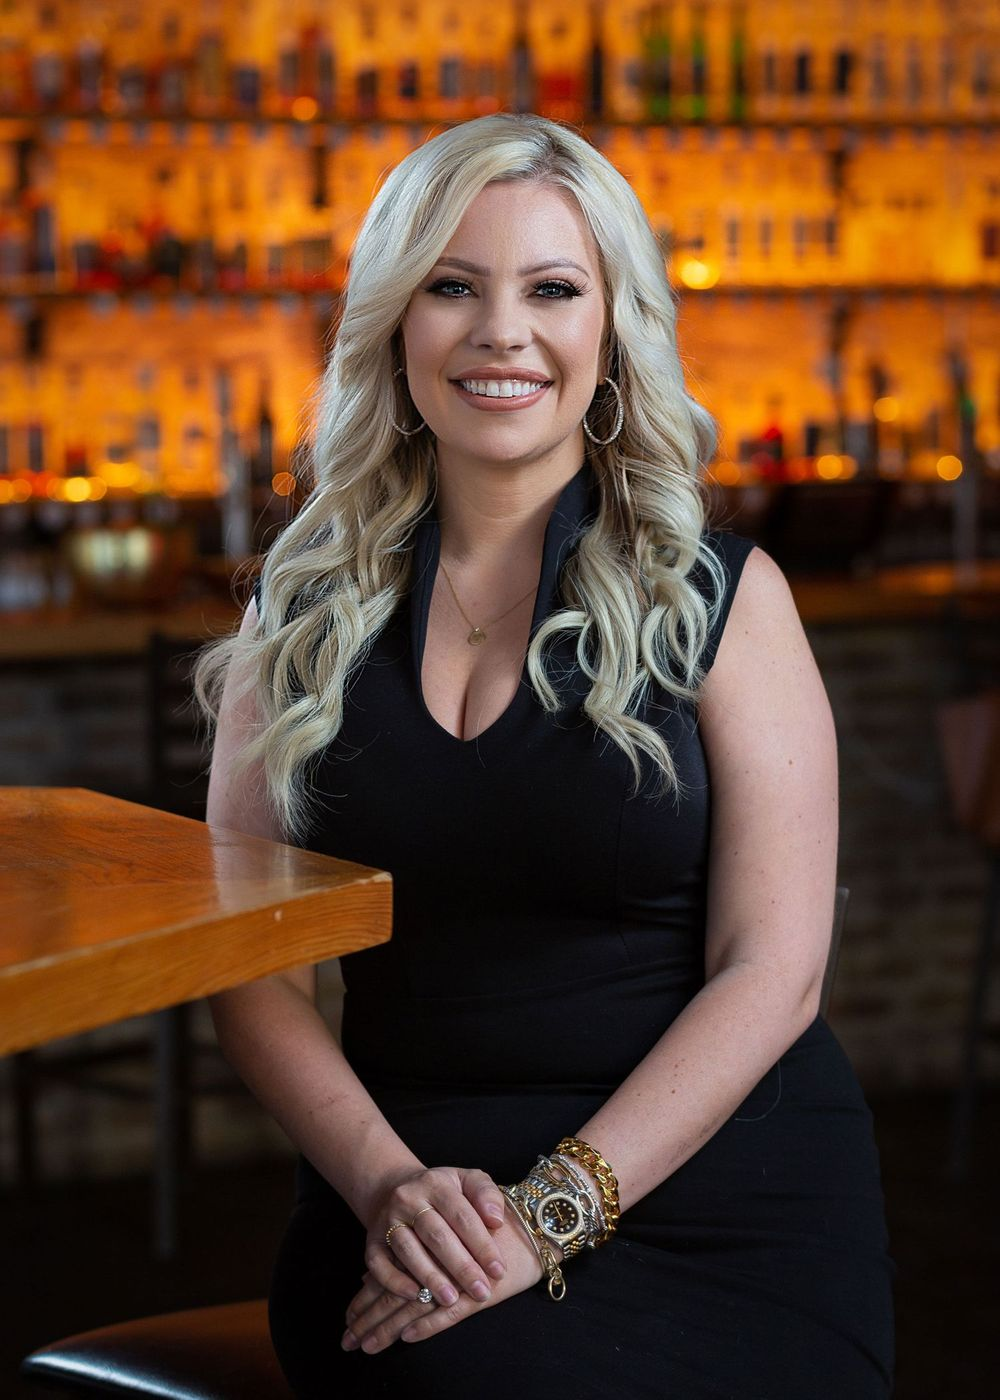 Millicent Ryne Headshot of Beer Business Daily in San Antonio, TX